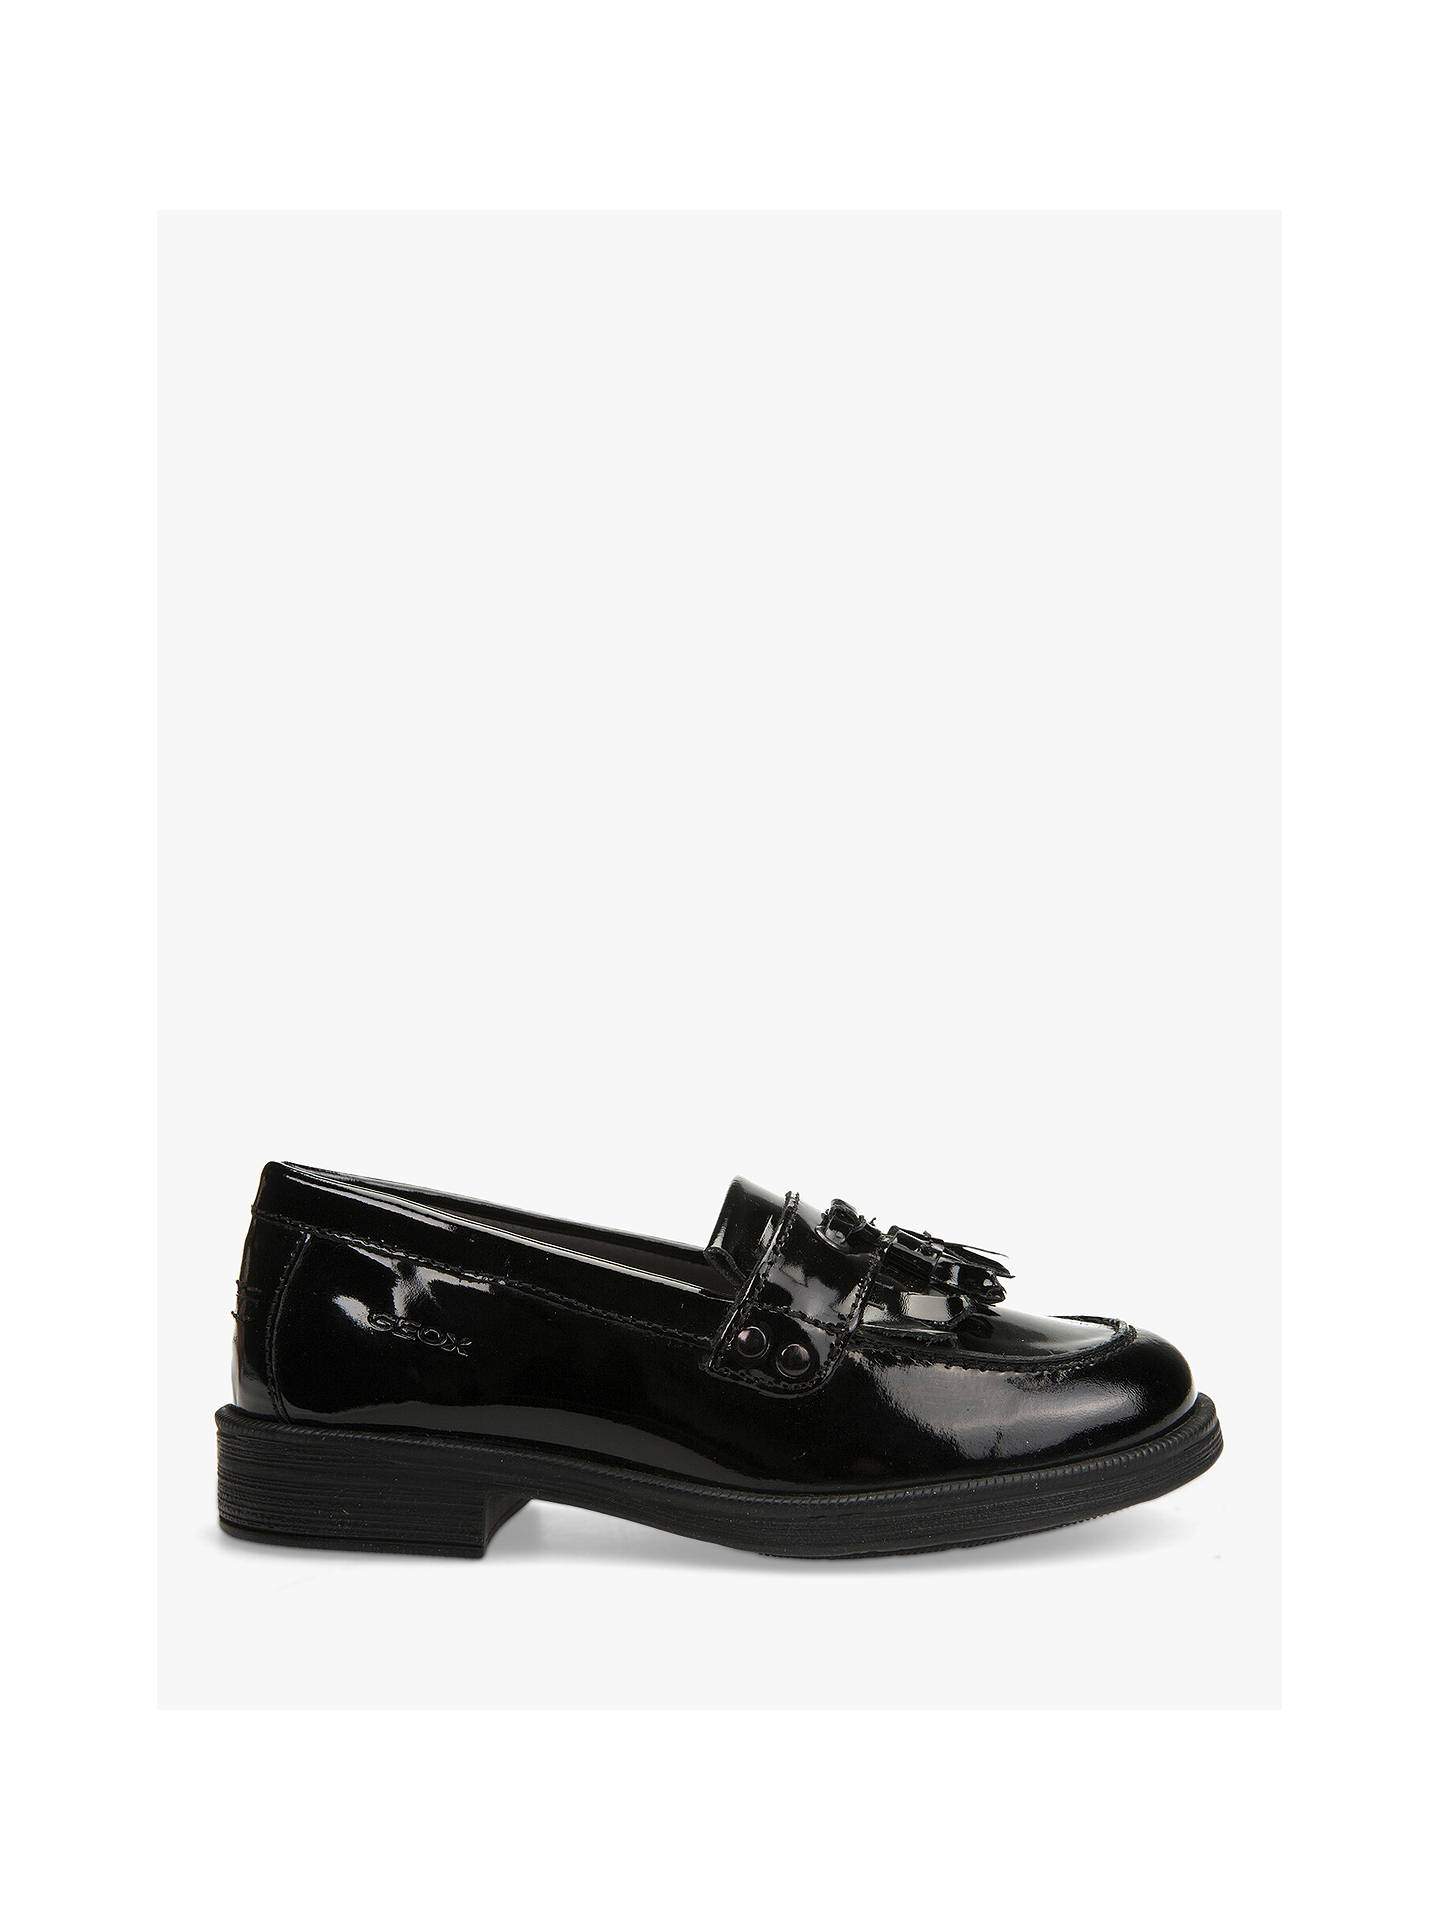 aecd6ff1ee1 Buy Geox Children's Agata Slip On Leather Loafers, Patent Black, 30 Online  at johnlewis ...